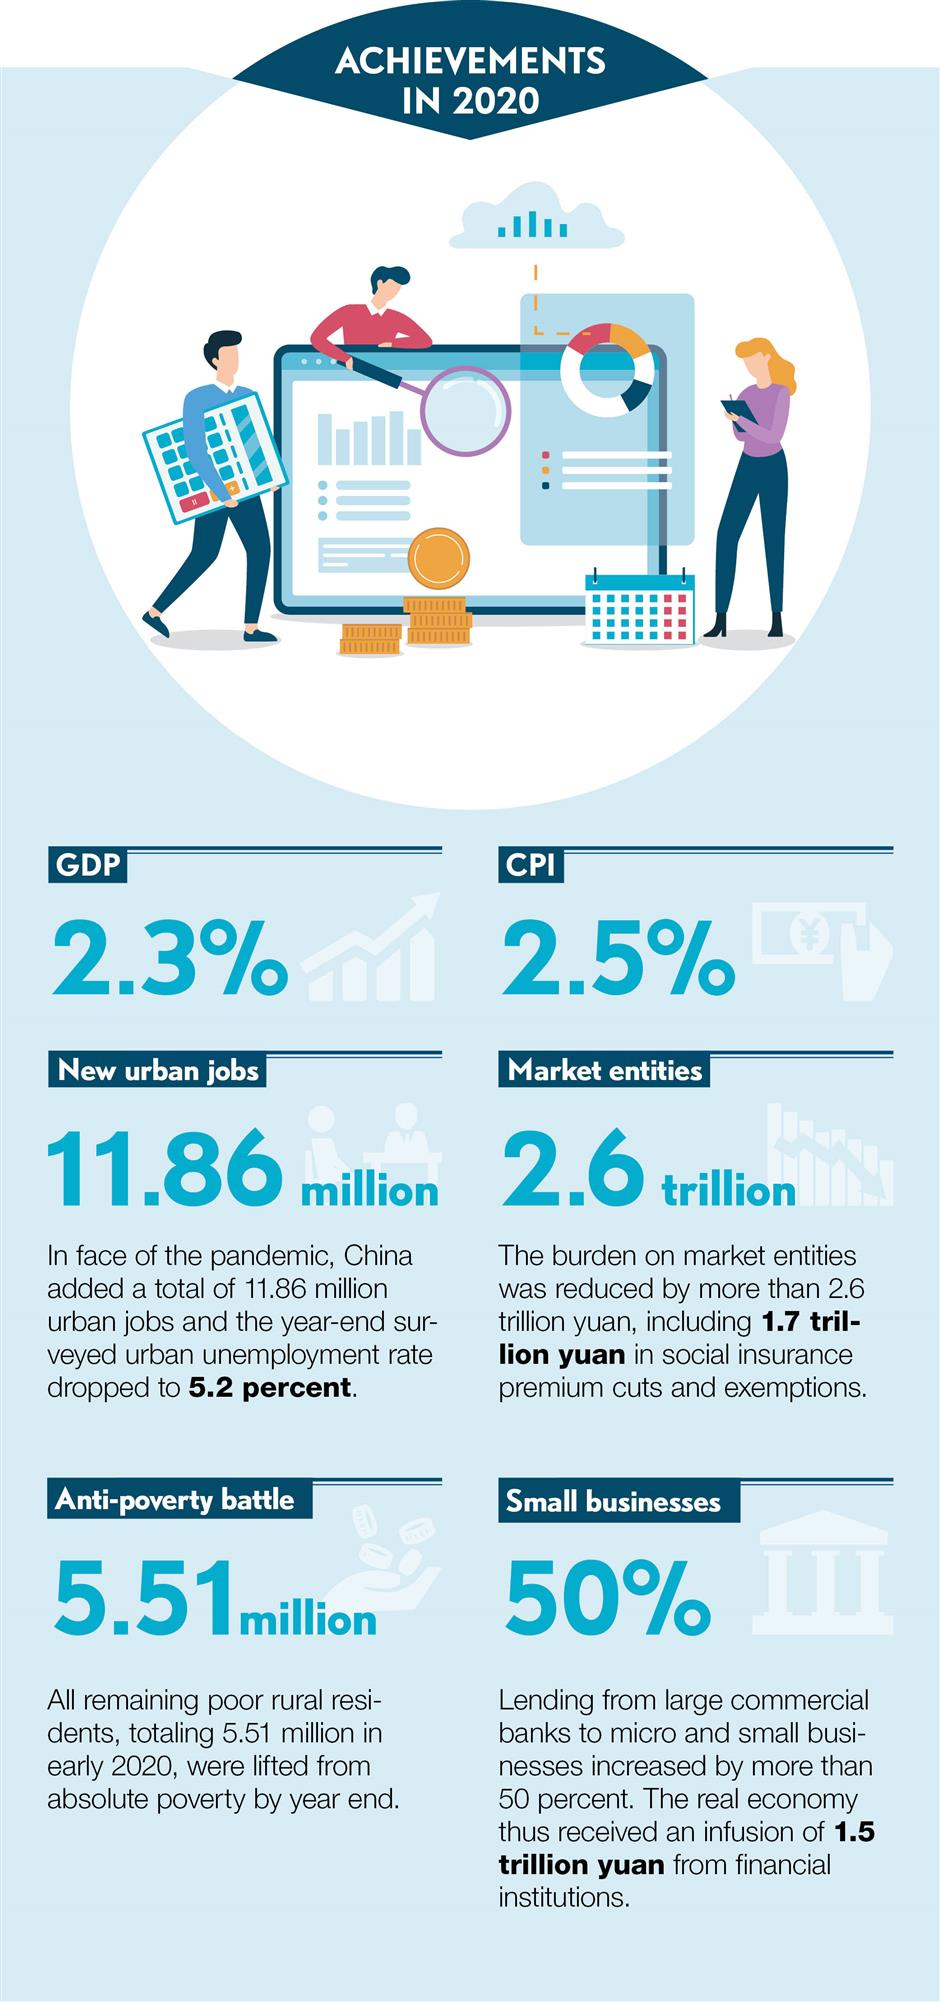 What China achieved in 2020 and plans to accomplish in 2021